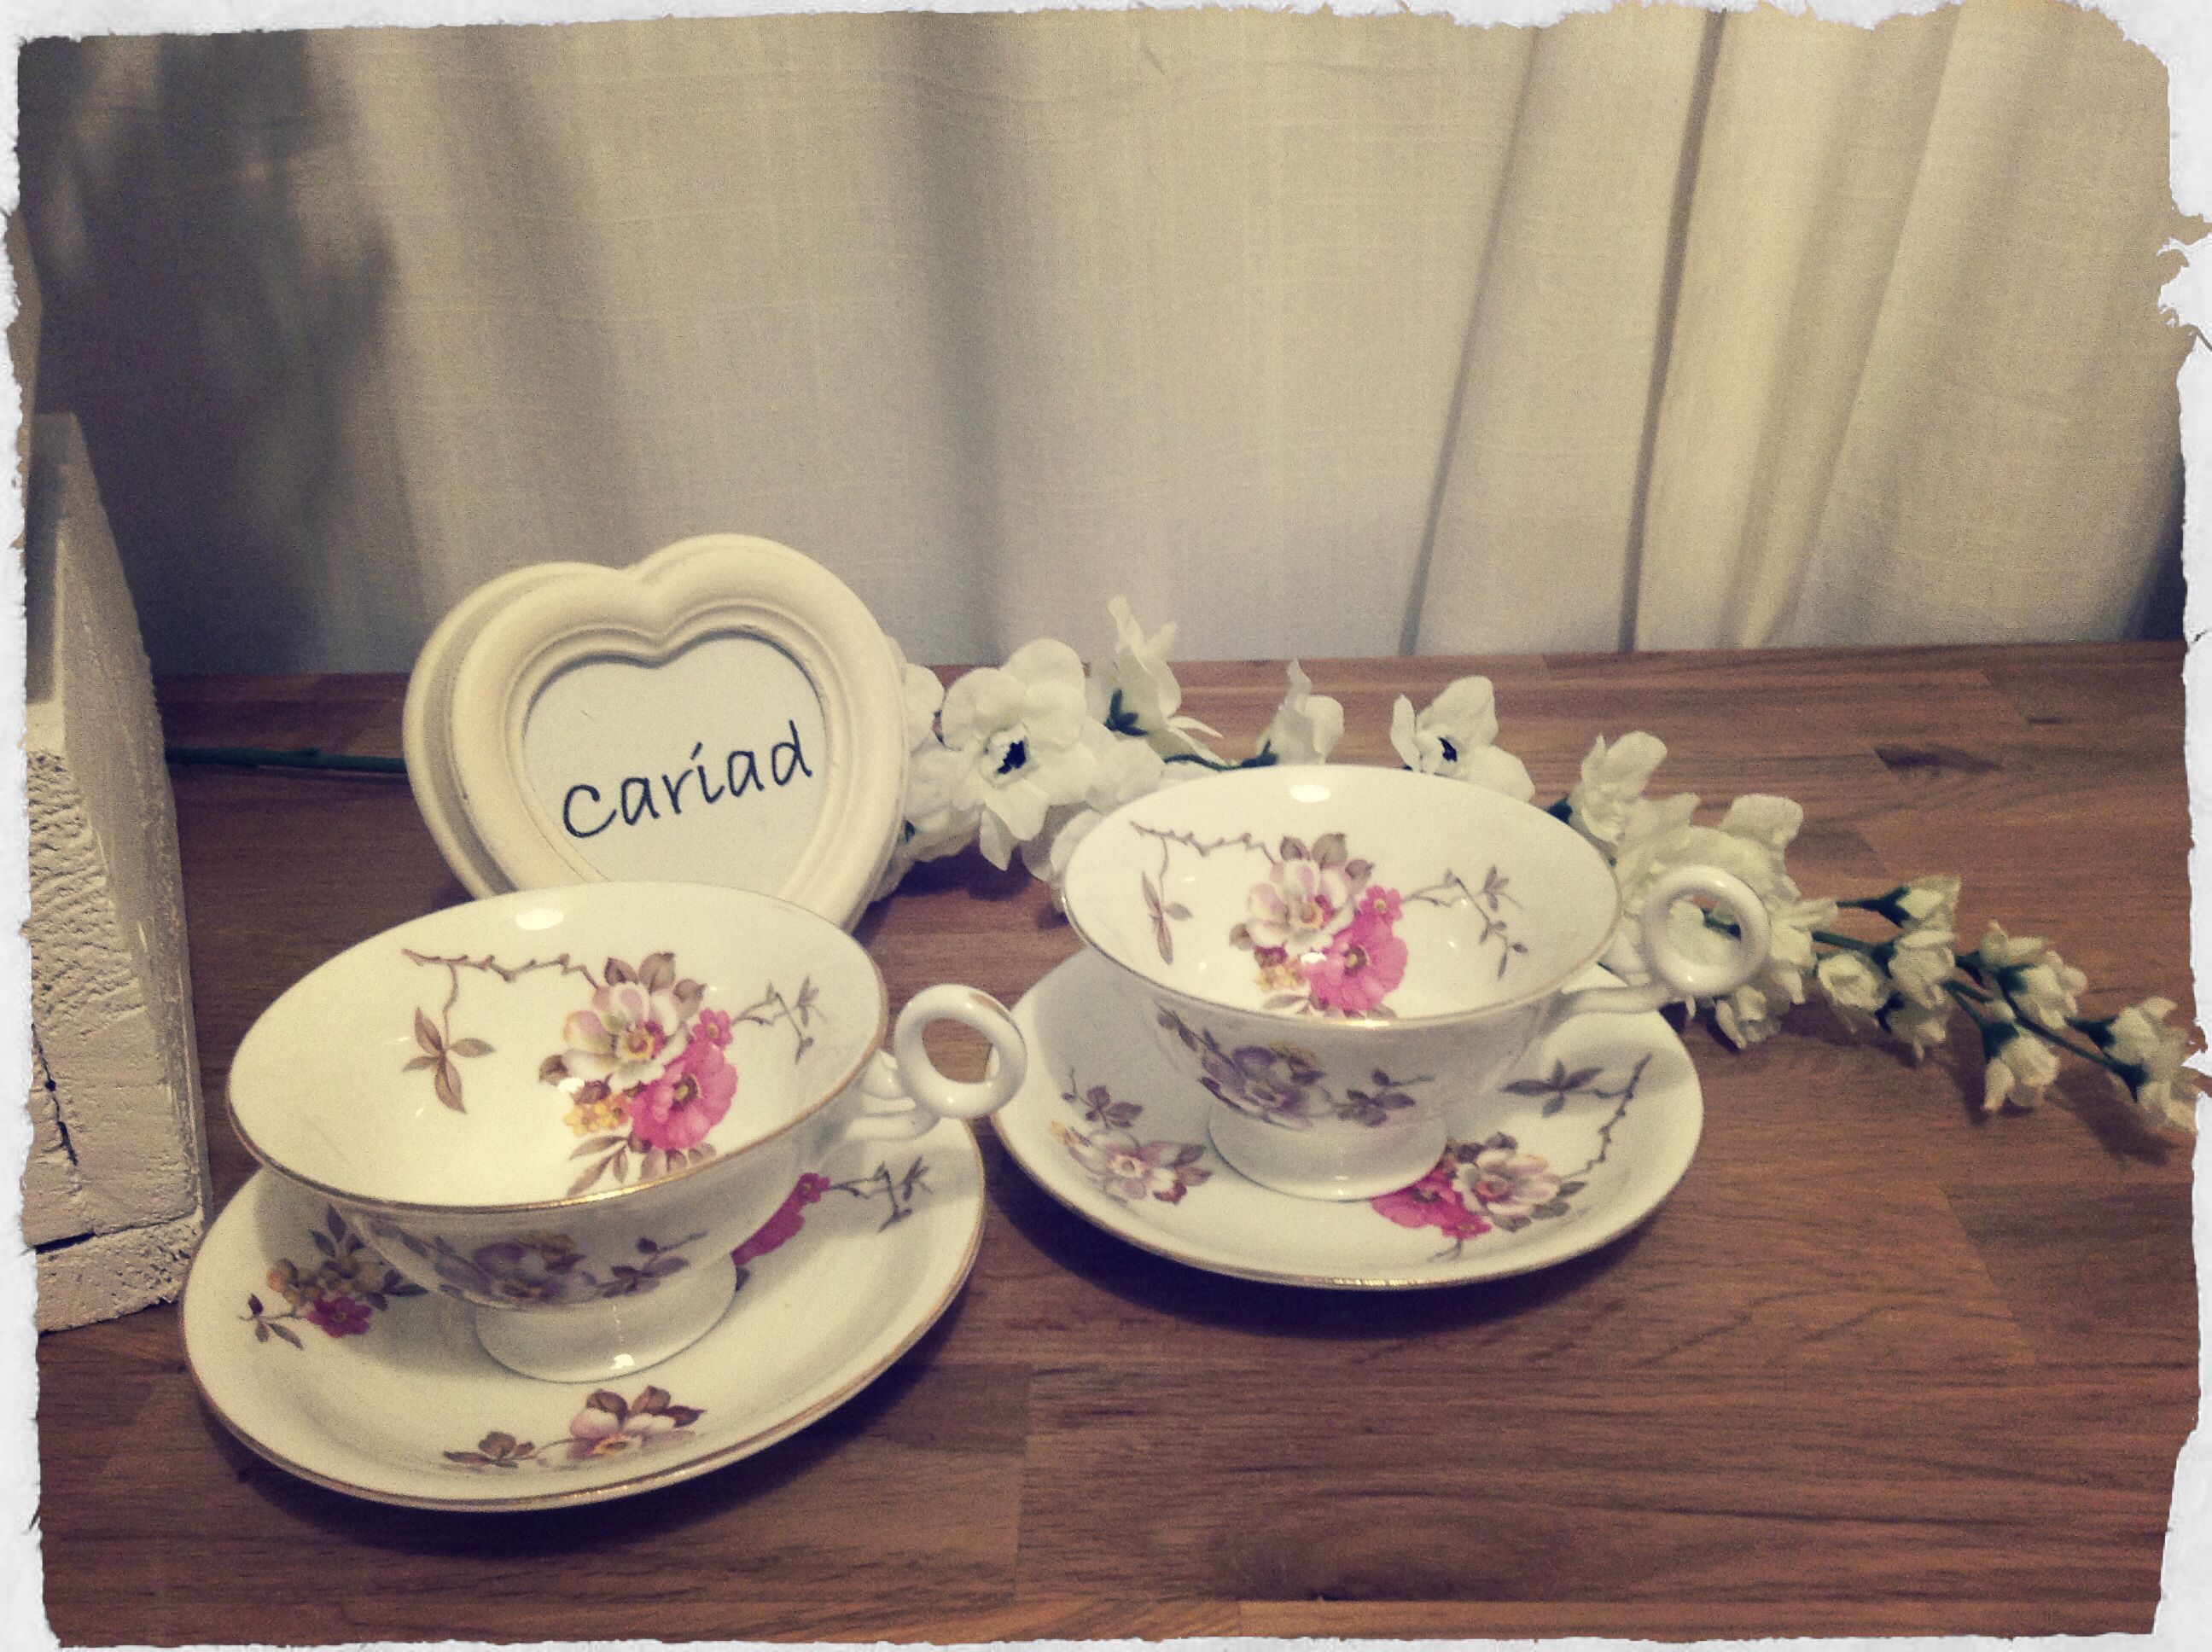 Tea party anyone? x